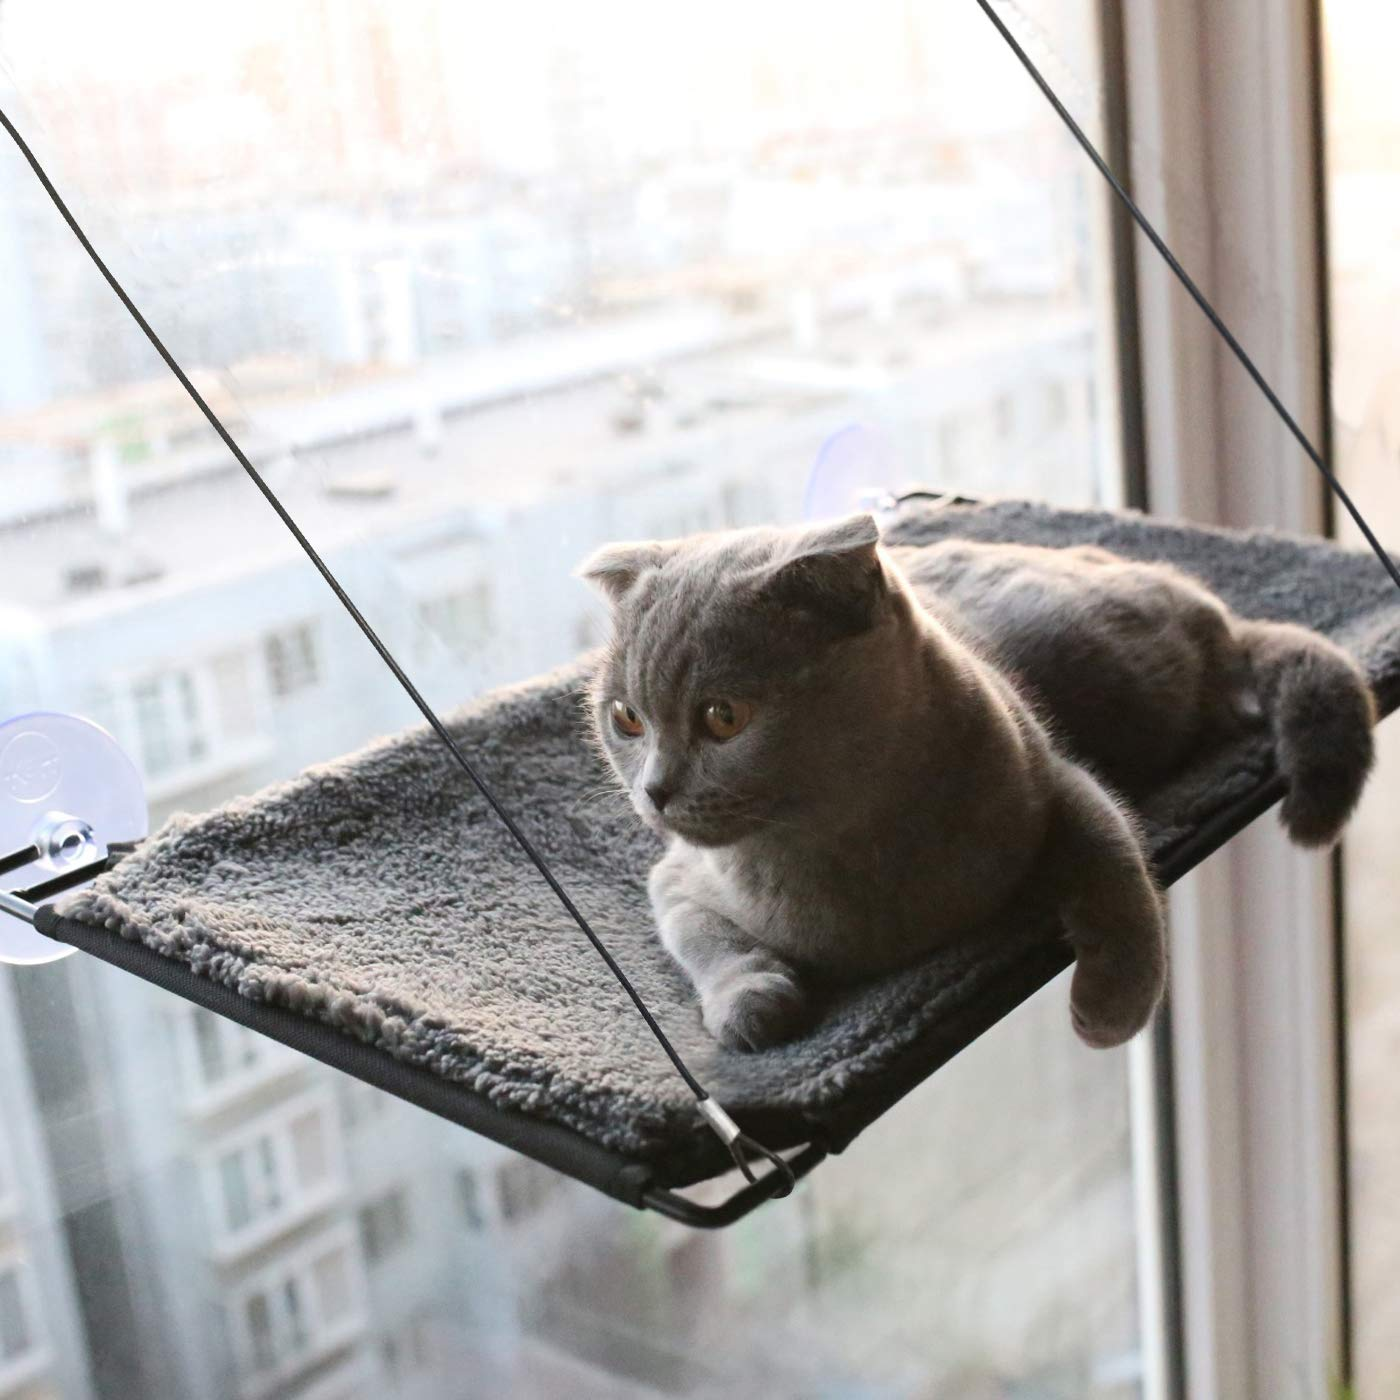 BobbyPet Cat Window Perch Warm Cotton Fabric - Single Layer 12''x22.8'' EXTERMELY Durable Suction Cups can Holds Huge Cats Easy Set up Within 5 Minutes by BobbyPet